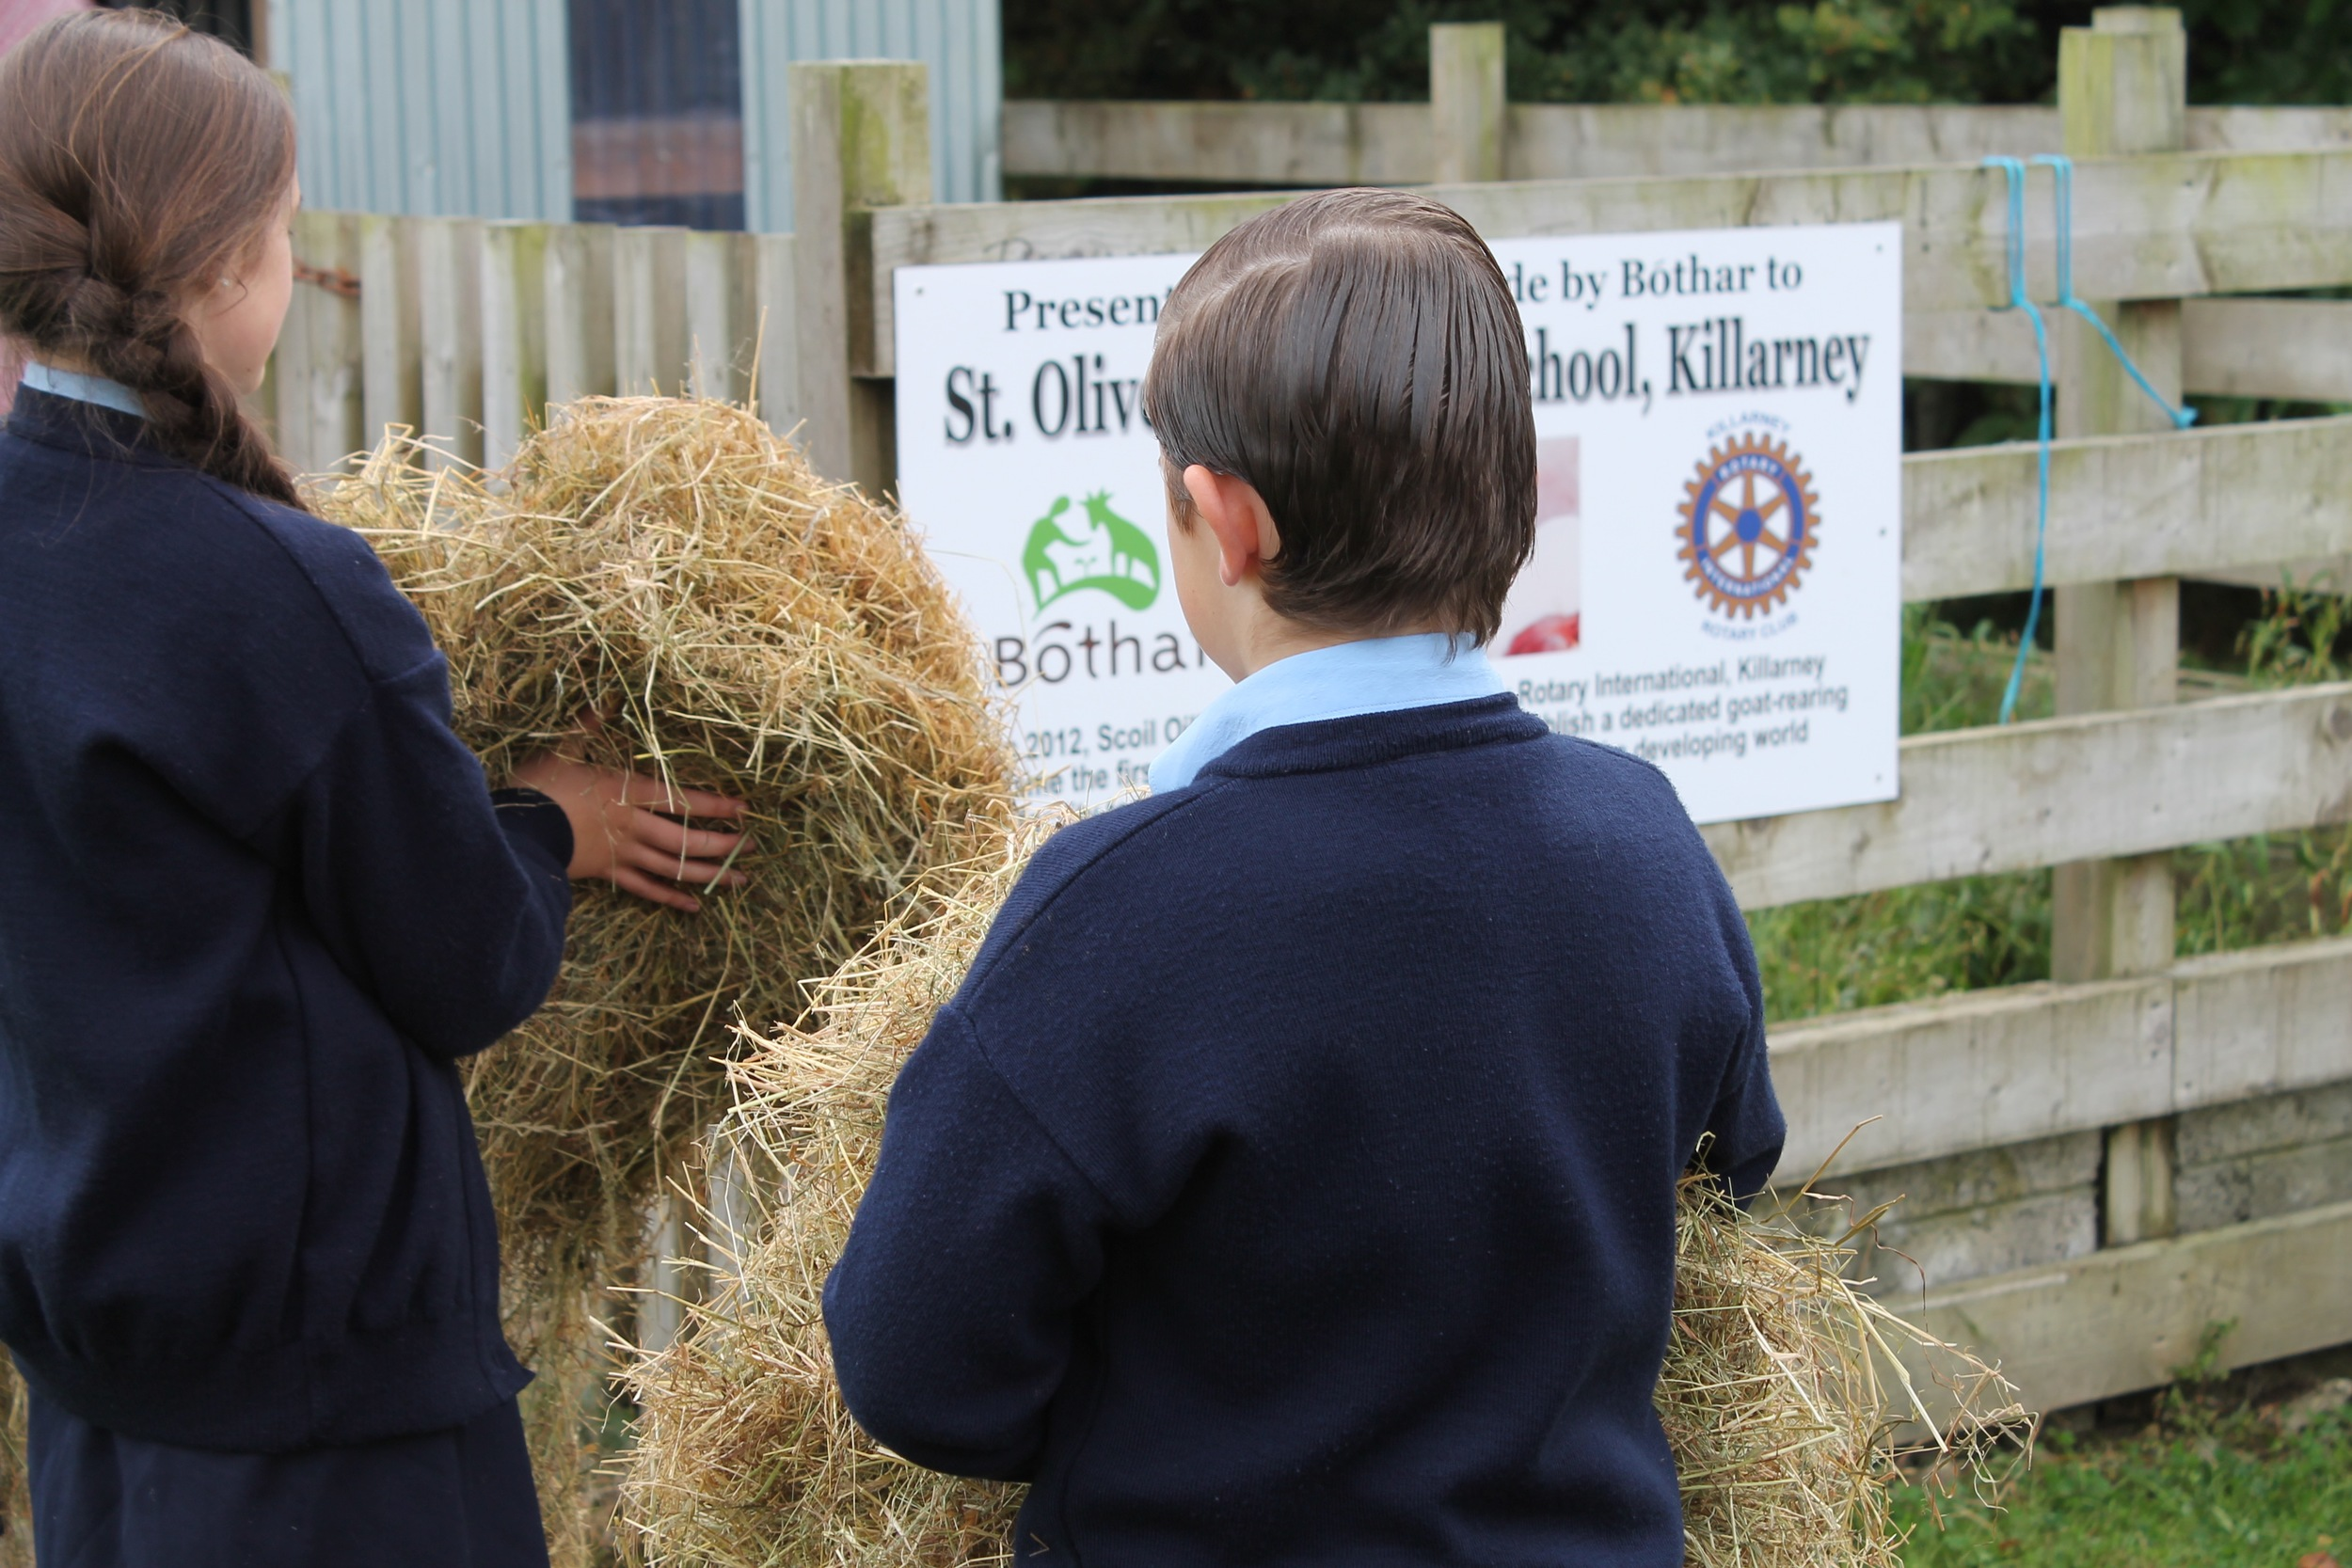 The farm is one of many initiatives to support the local community